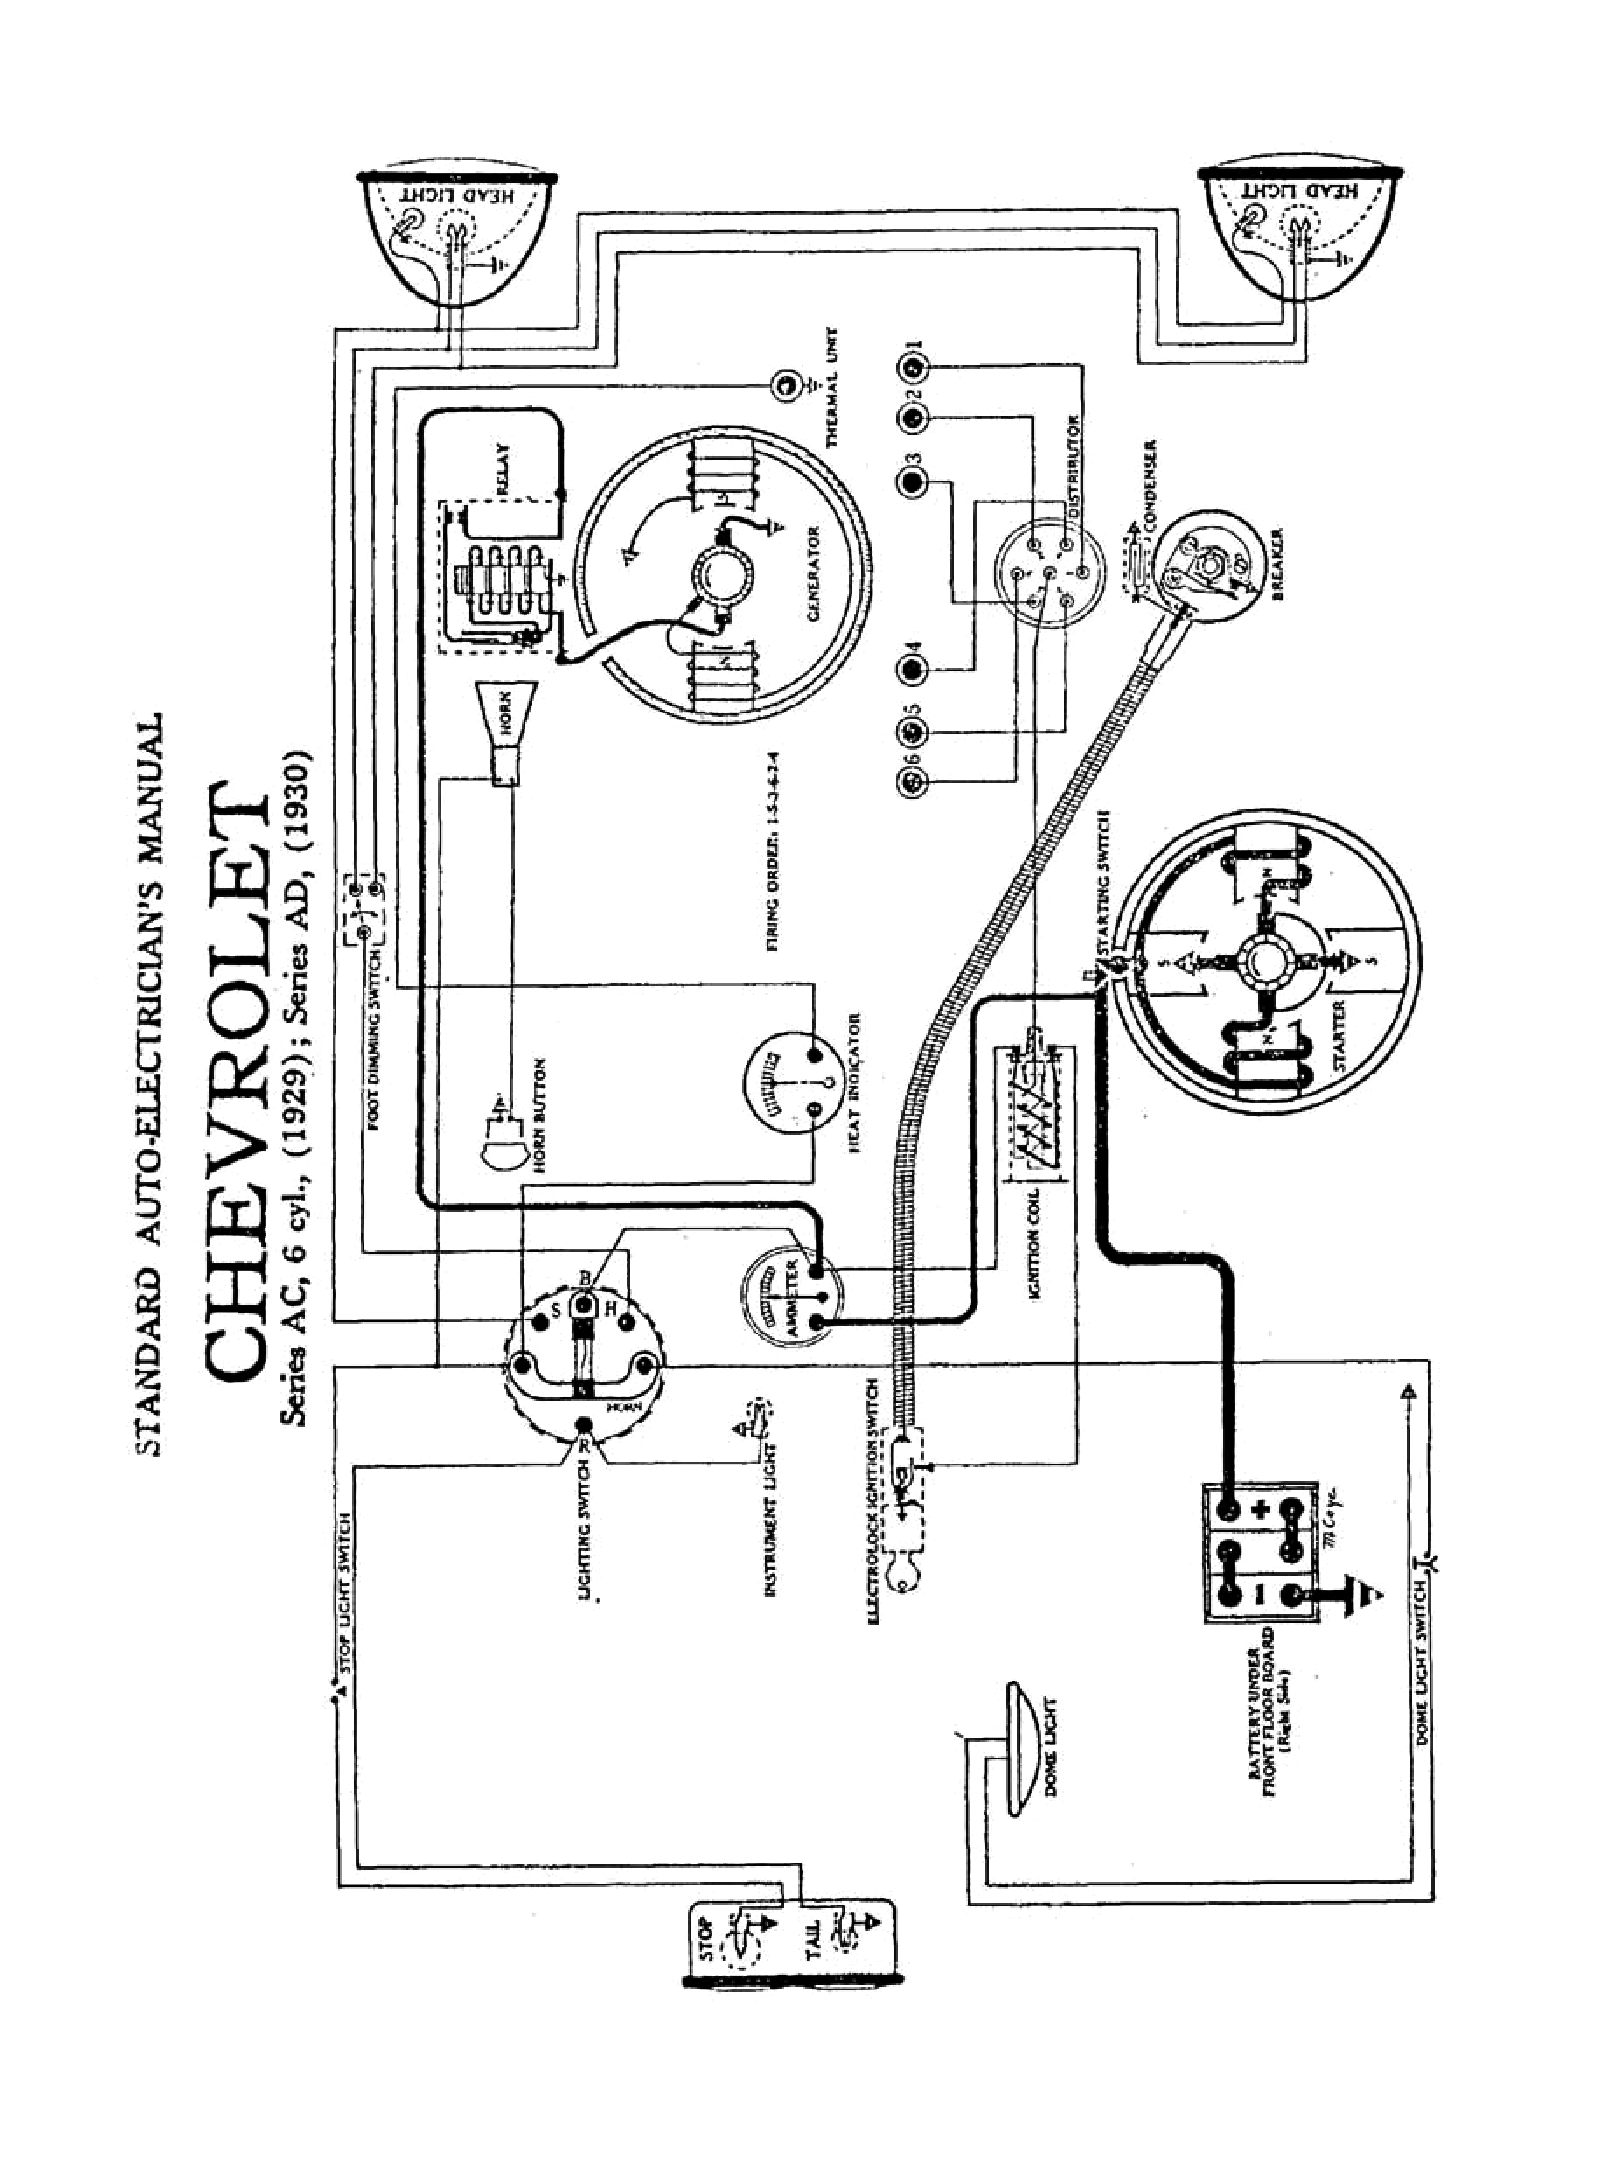 small resolution of 1930 ford wiring diagram wiring diagram g11 1930 model a wiring diagram